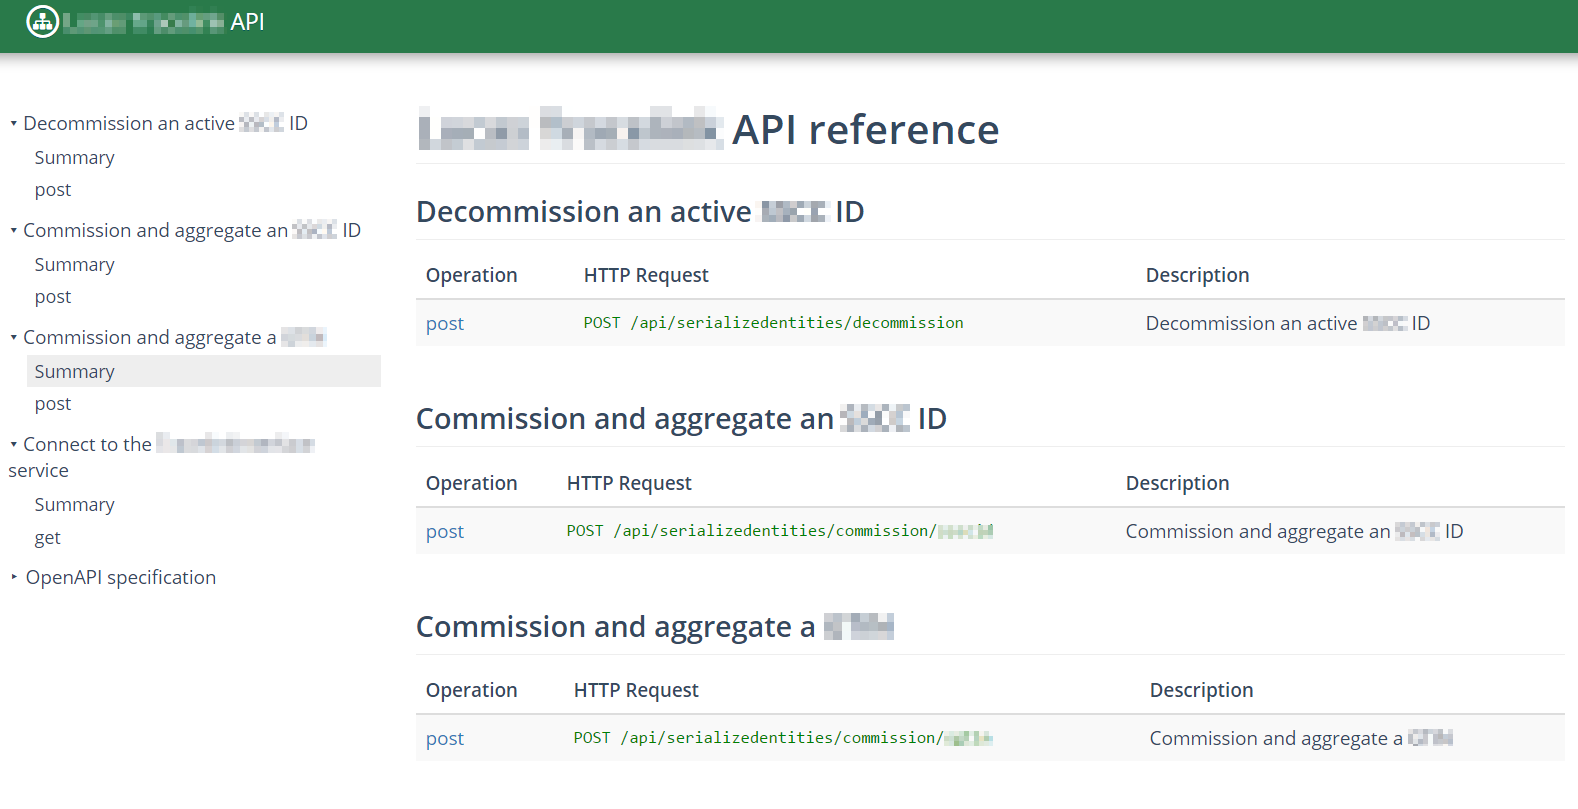 DapperDox API reference screenshot